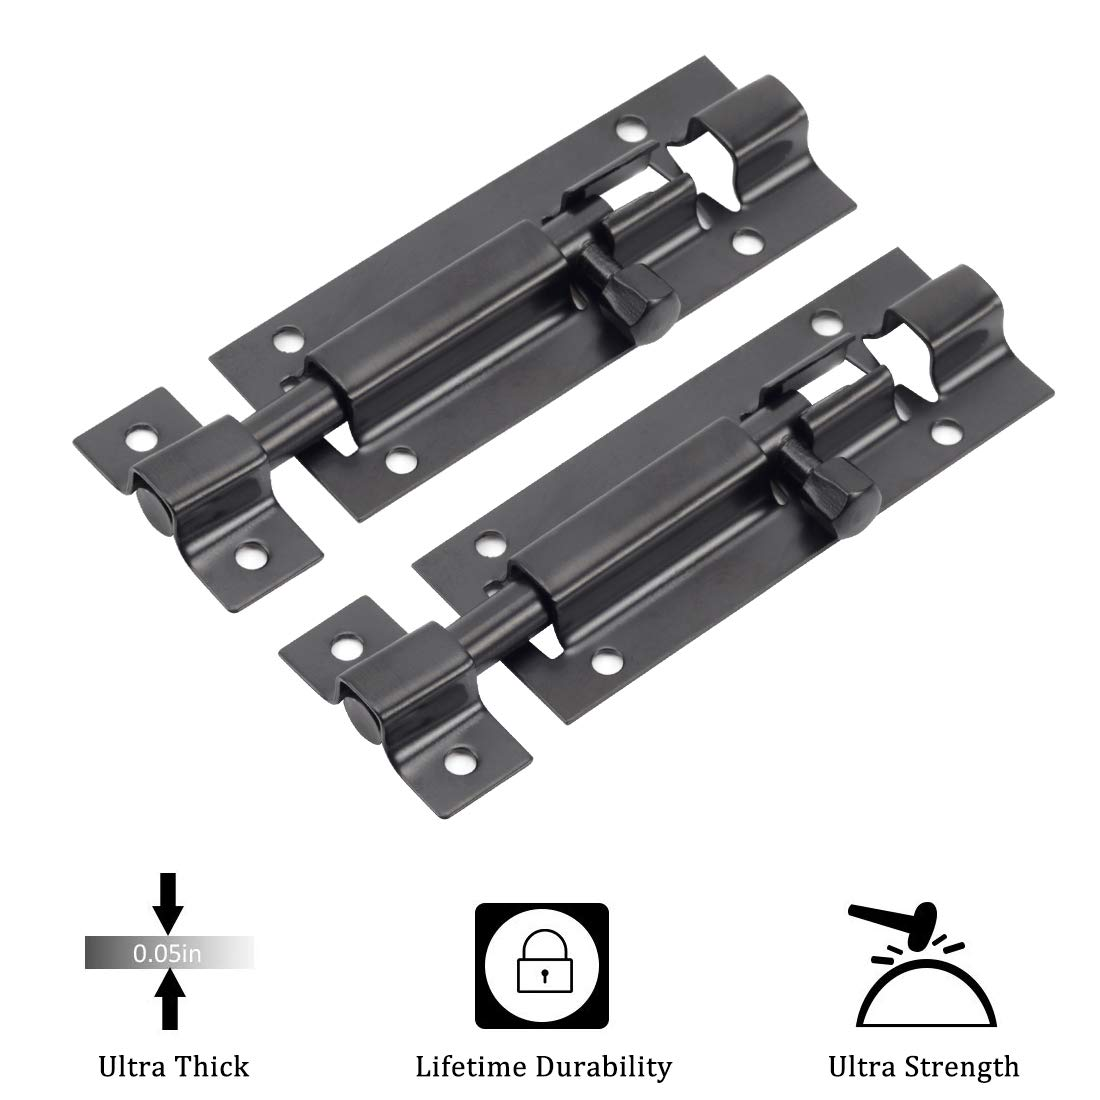 TPOHH 3 inch Door Window Security Black Slide Latch Lock with Solid Heavy Duty Stainless Steel to Keep You Safe and Private